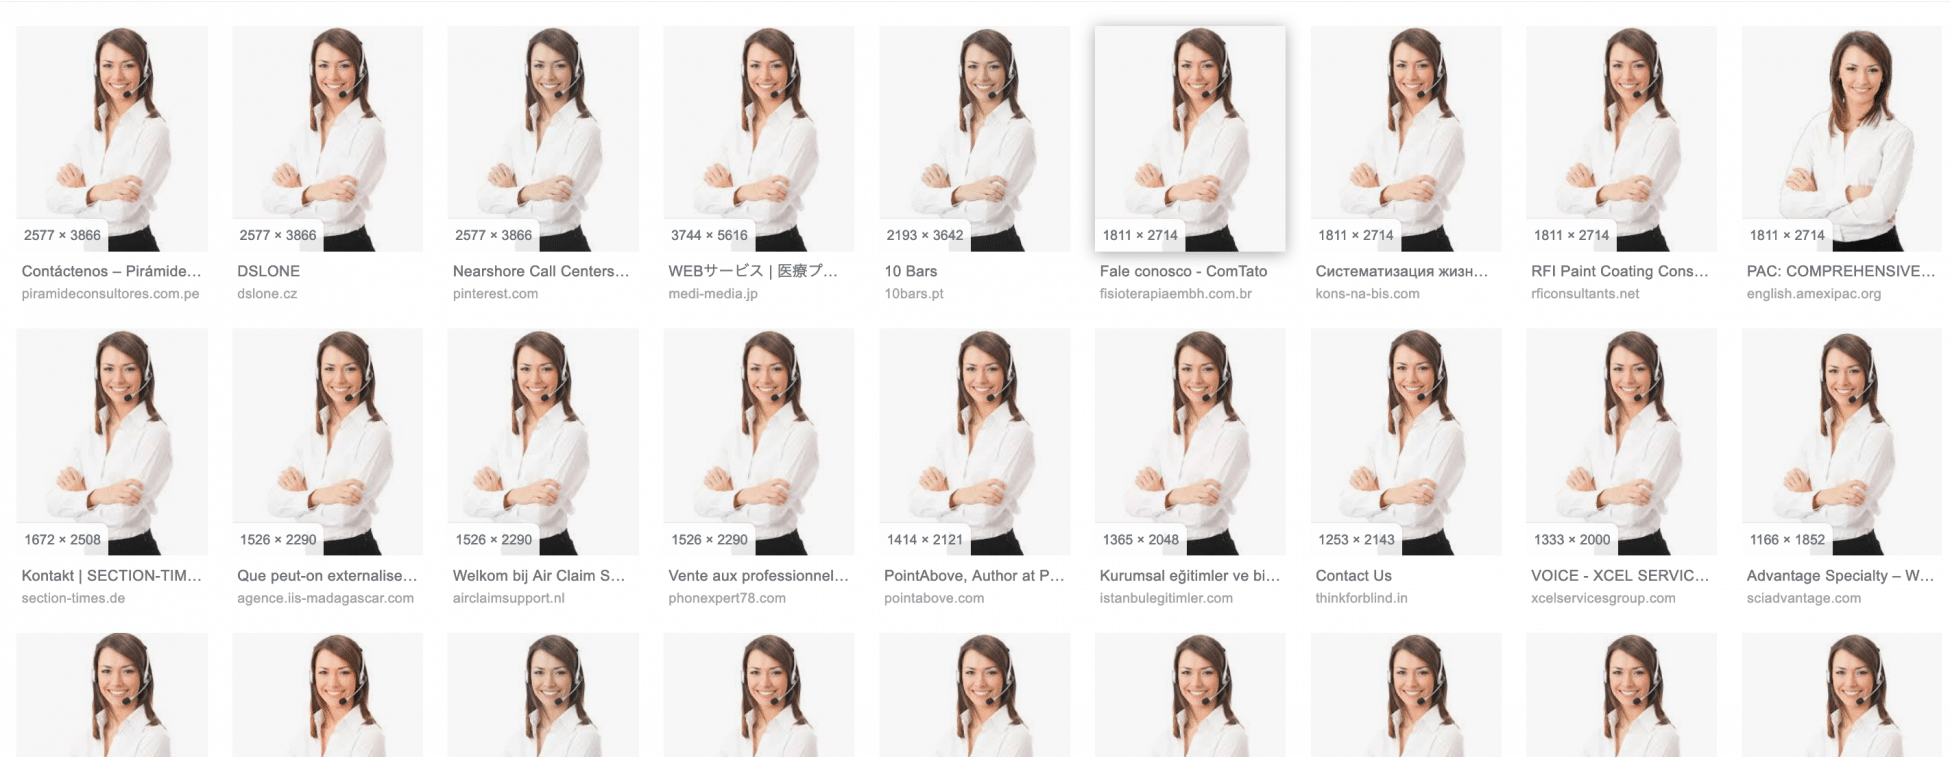 This Photo is on 100s of site and example of overused Stock Photos